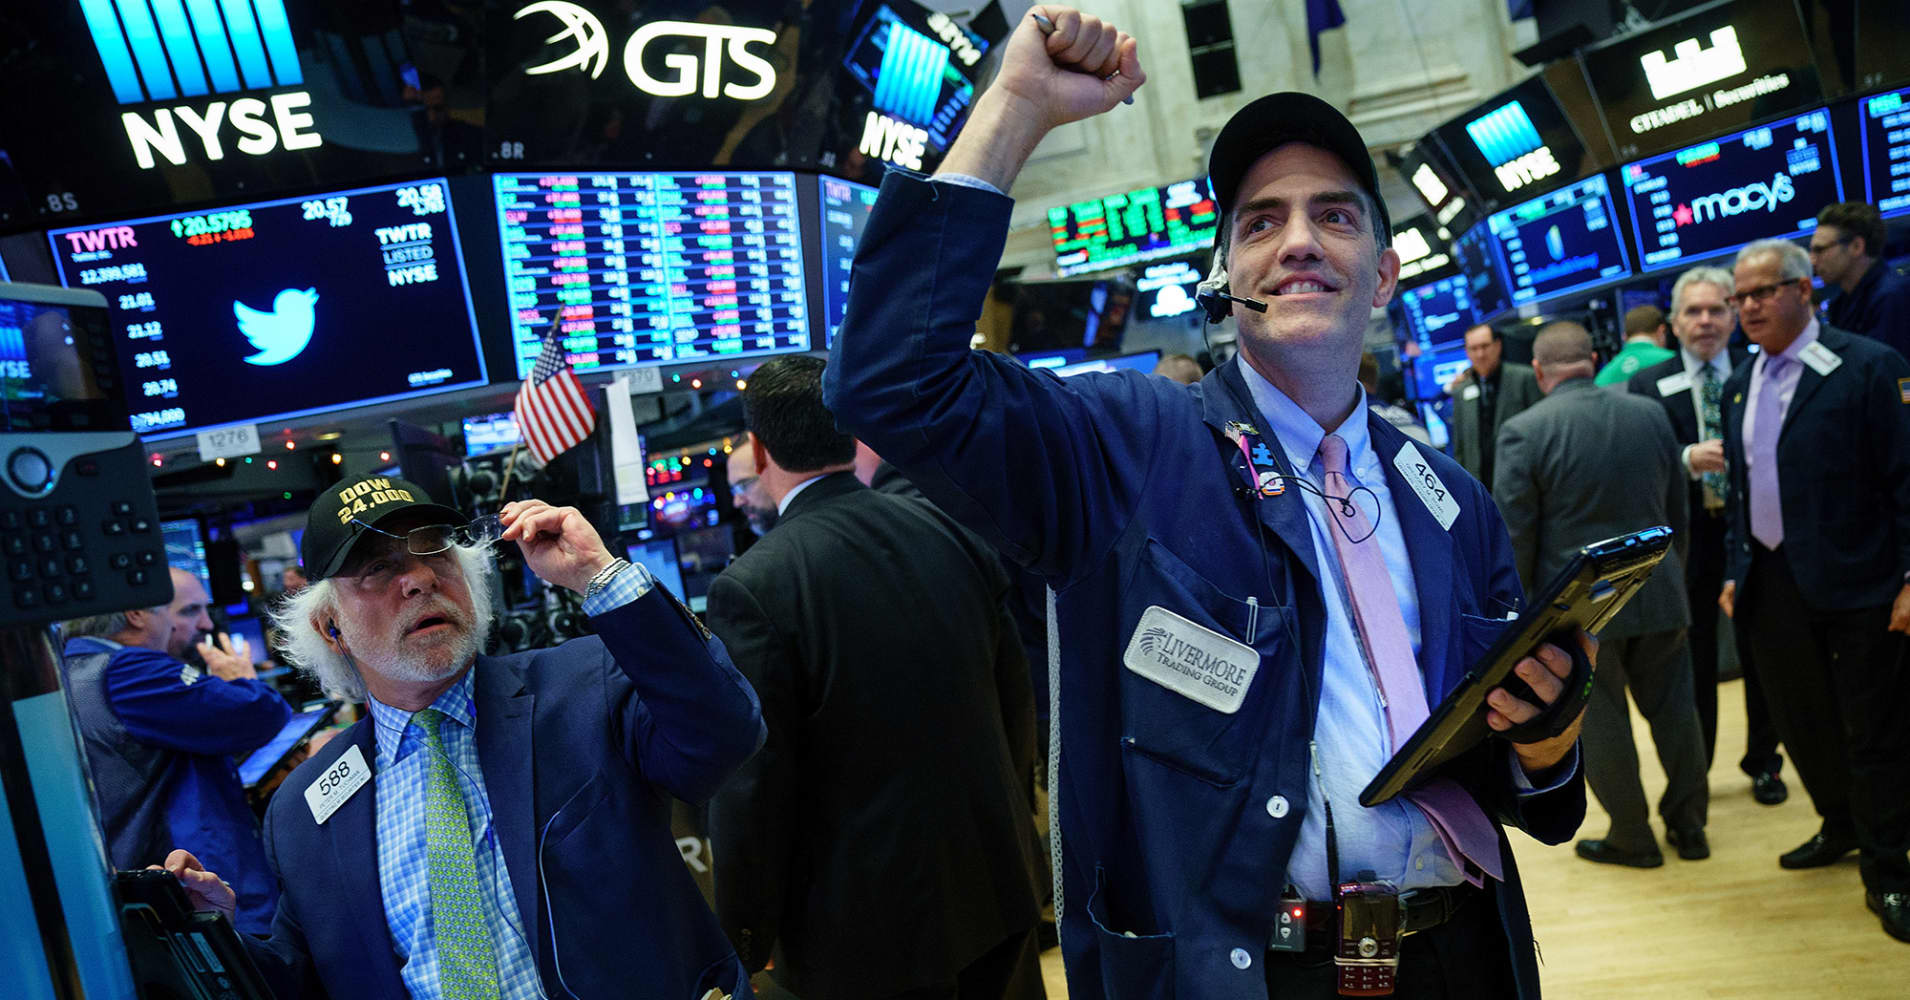 Stocks finish at record highs, S&P 500 has best start to a year since 1987